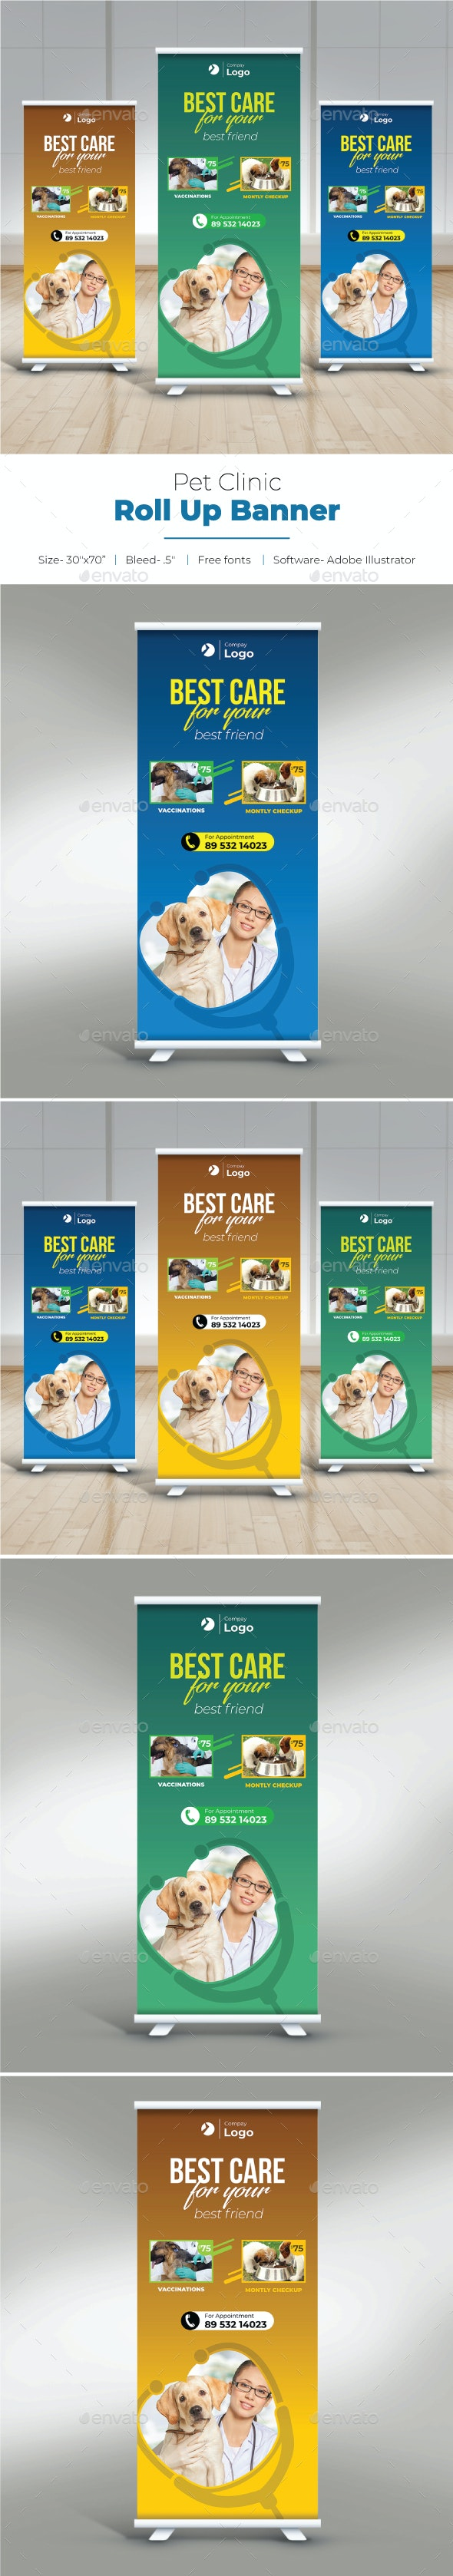 Pet Clinic Roll Up Banner - Signage Print Templates